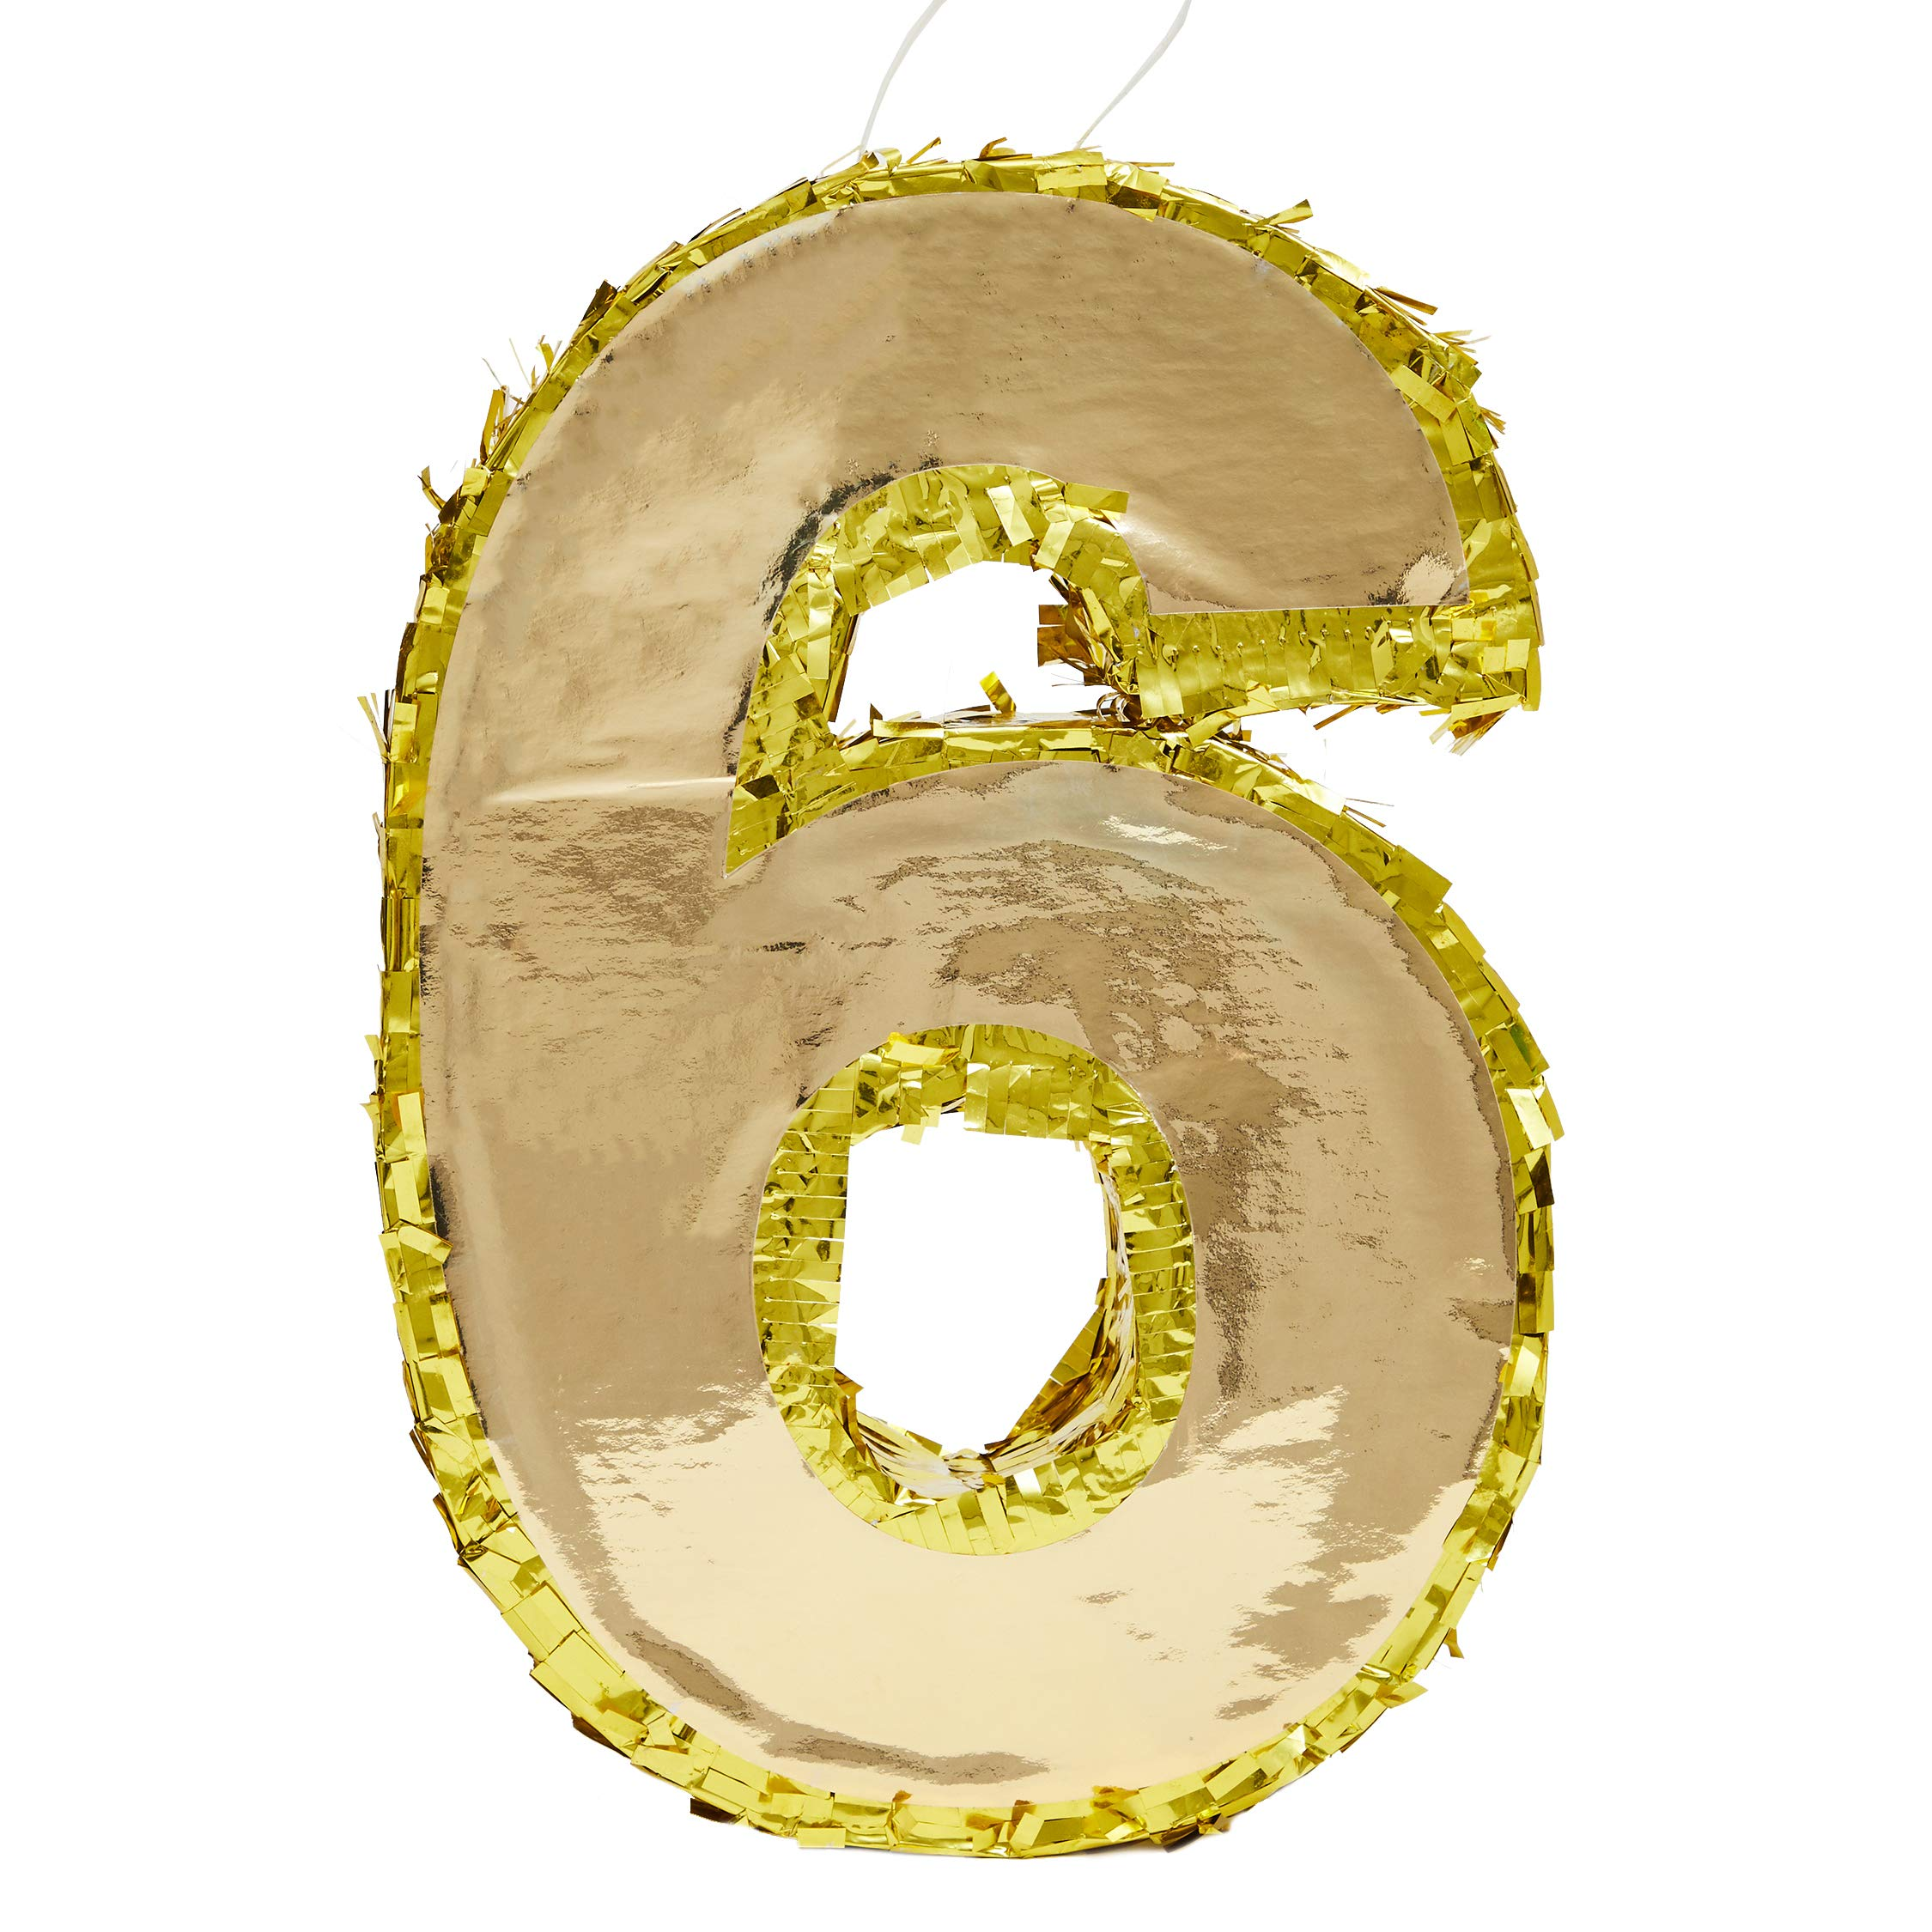 Juvale Small Number 6 Gold Foil Pinata, Sixth Birthday Party Supplies, 15.5 x 10.5 x 3 Inches by Juvale